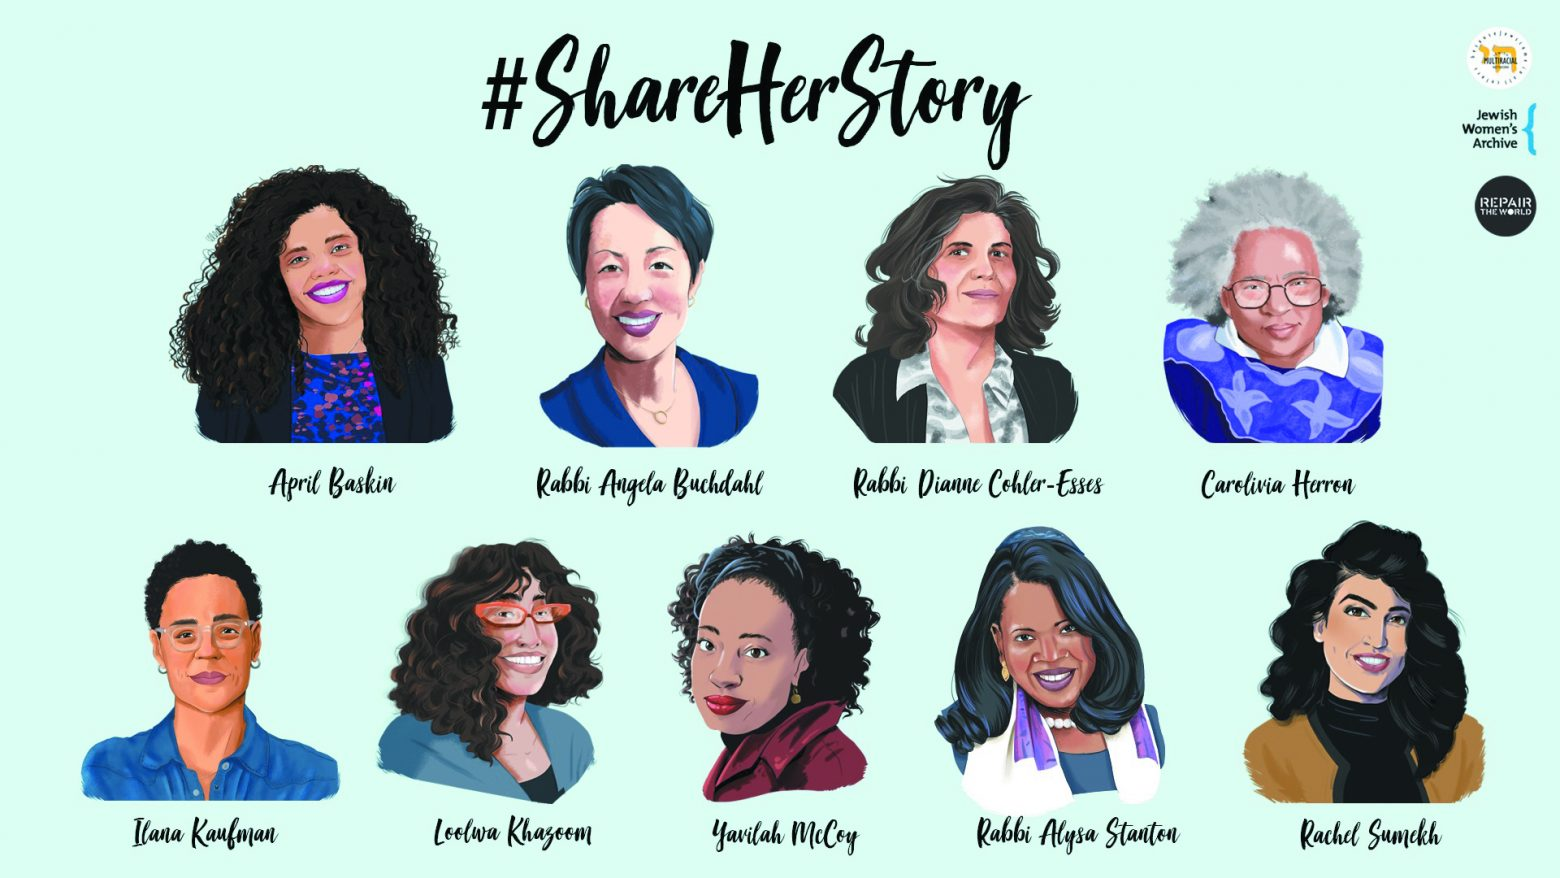 #ShareHerStory cartoon images of various women who will share their stories. Includes April Baskin, Rabbi angela Buchdahl, Rabbi Dianne Cohler-Esses, Carolivia Horen, Ilana Kaufman, Loolusa Khaseem, Yavilah McCoy, Rabbi Alysa Stanten, and Rachel Sumckh.